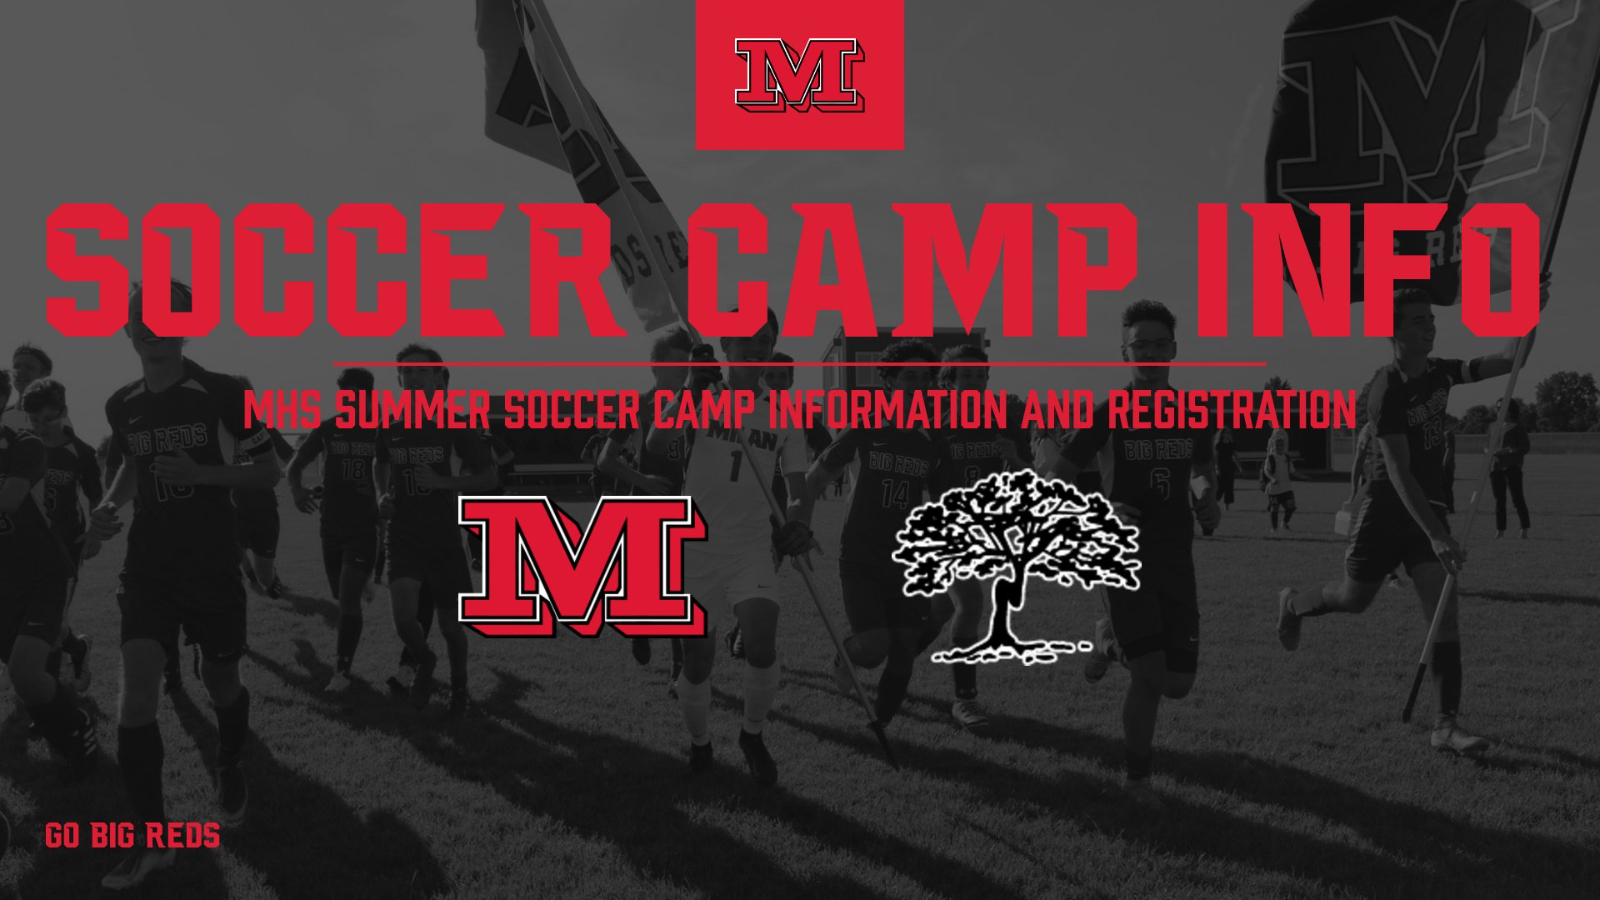 Milan Summer Soccer Camp Information and Registration